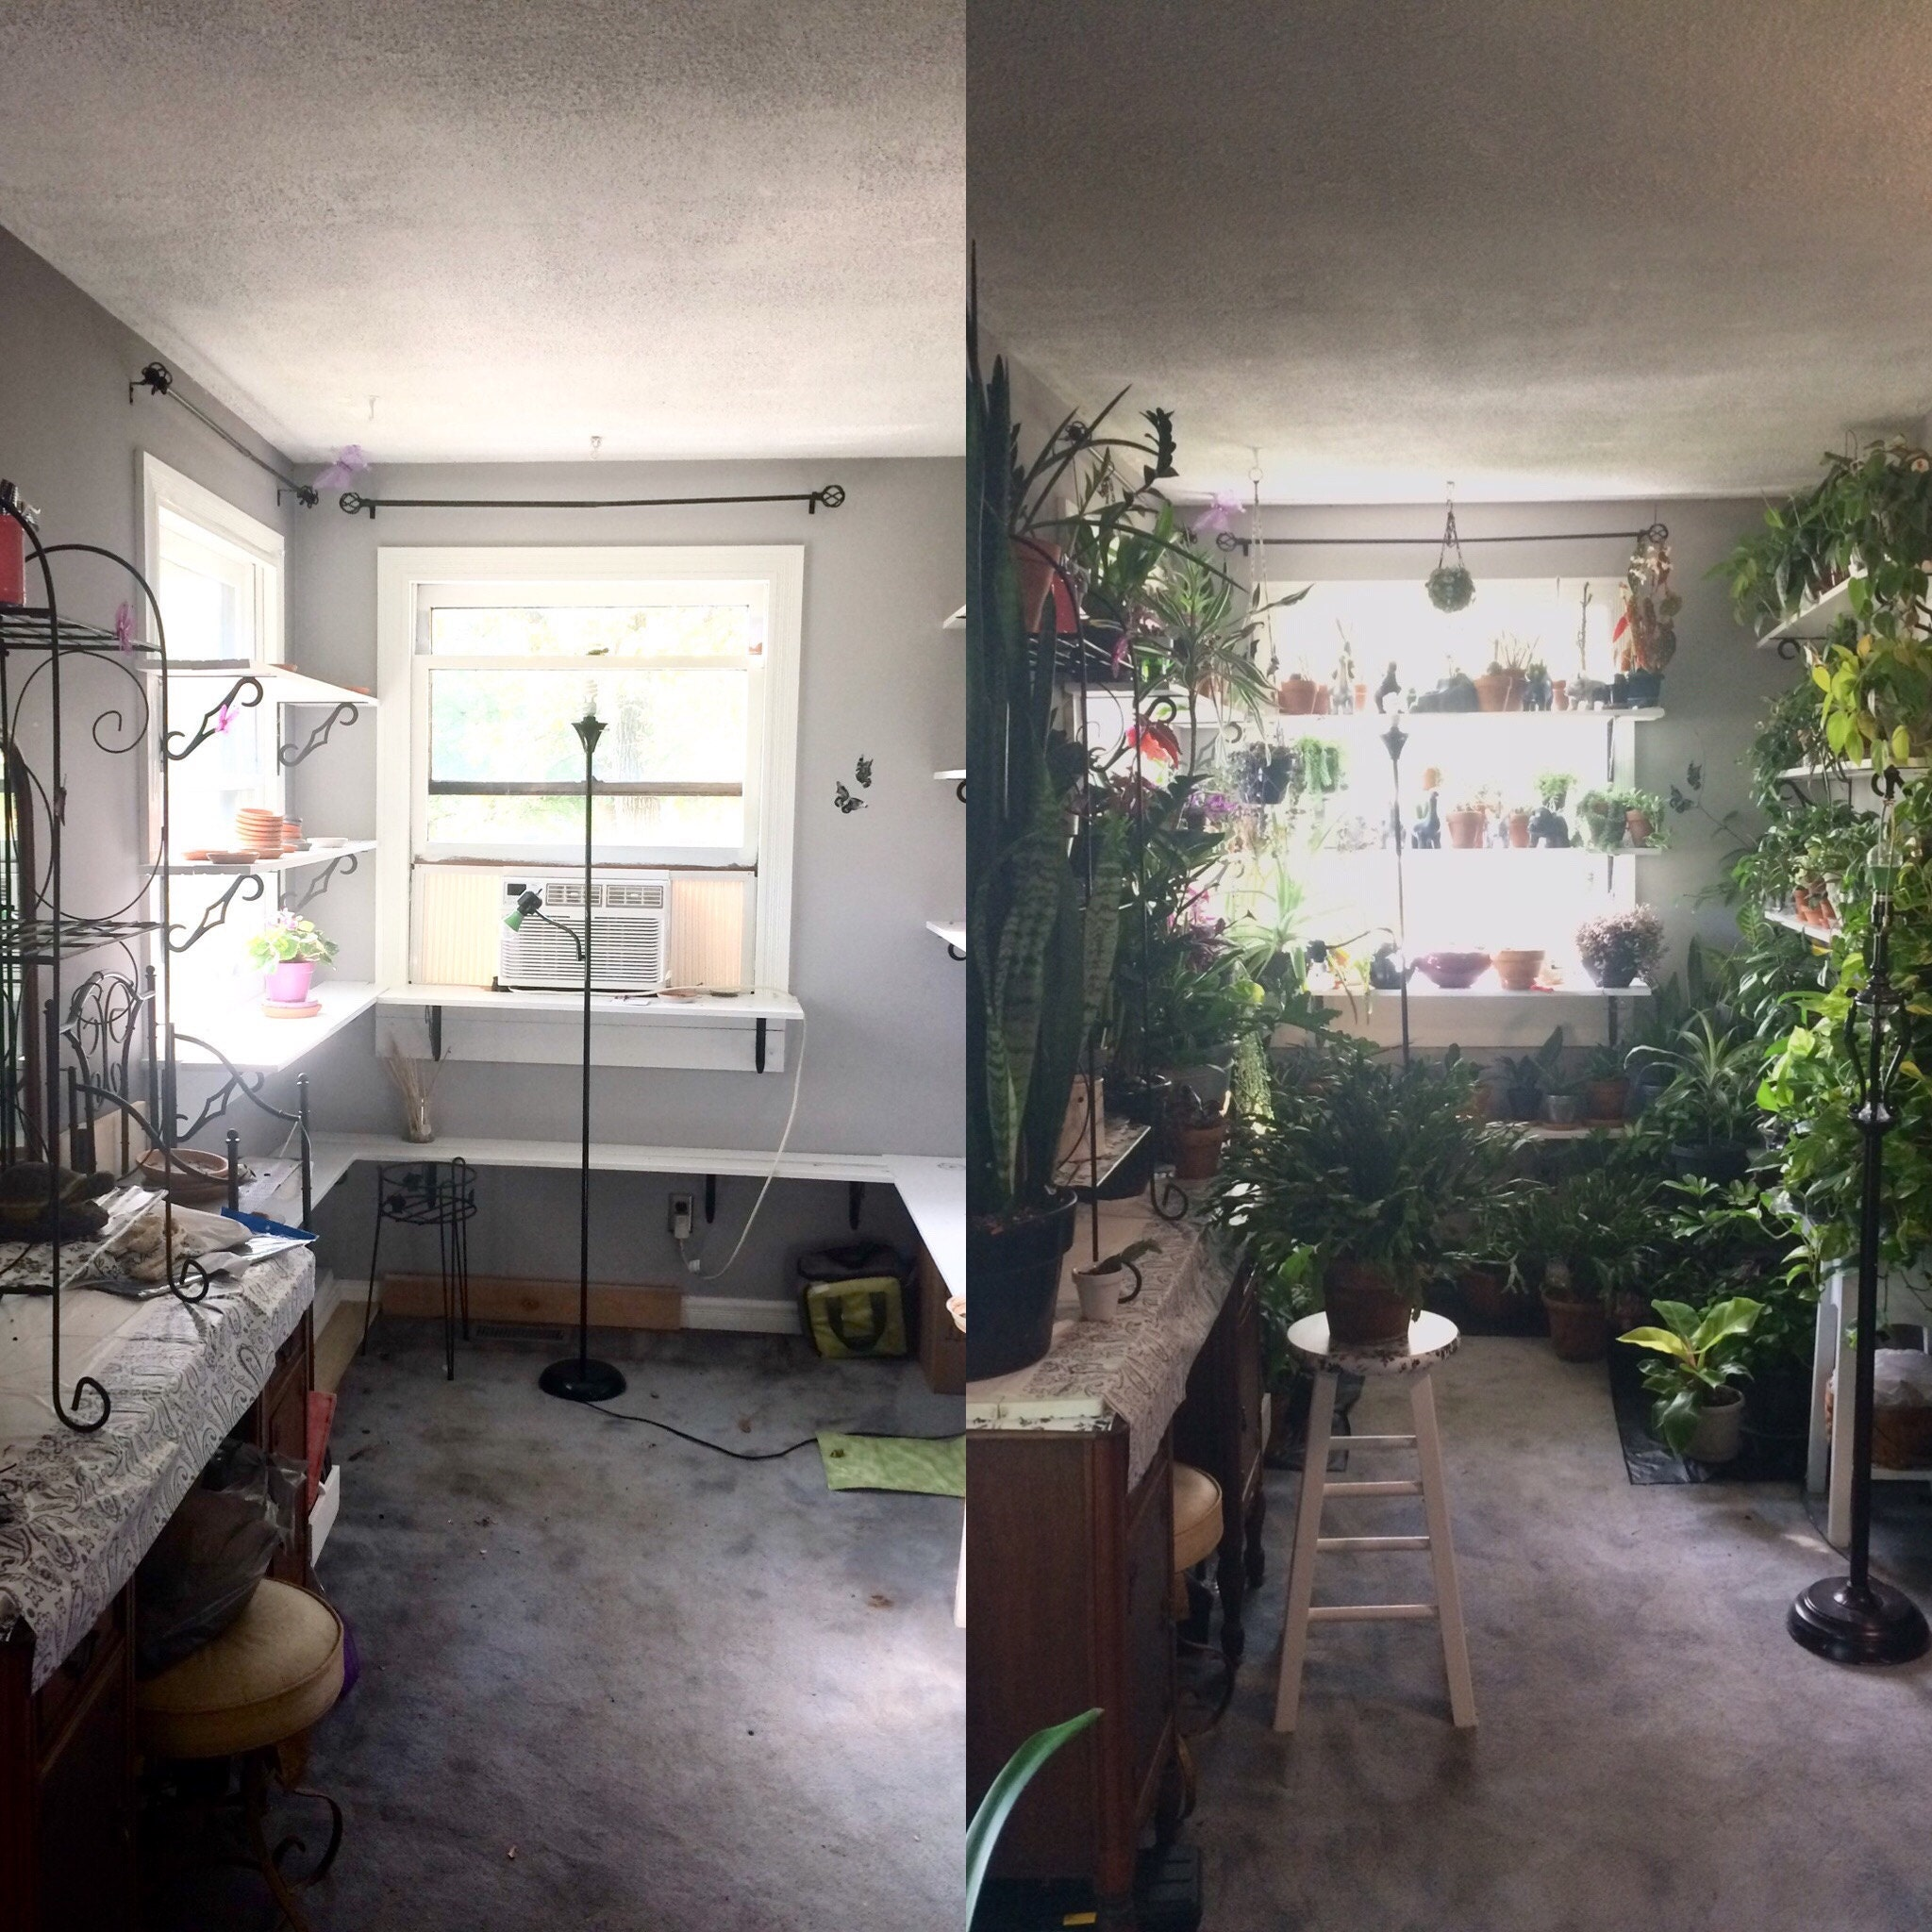 The transformation from summer to winter - its so barren and empty without the plants!